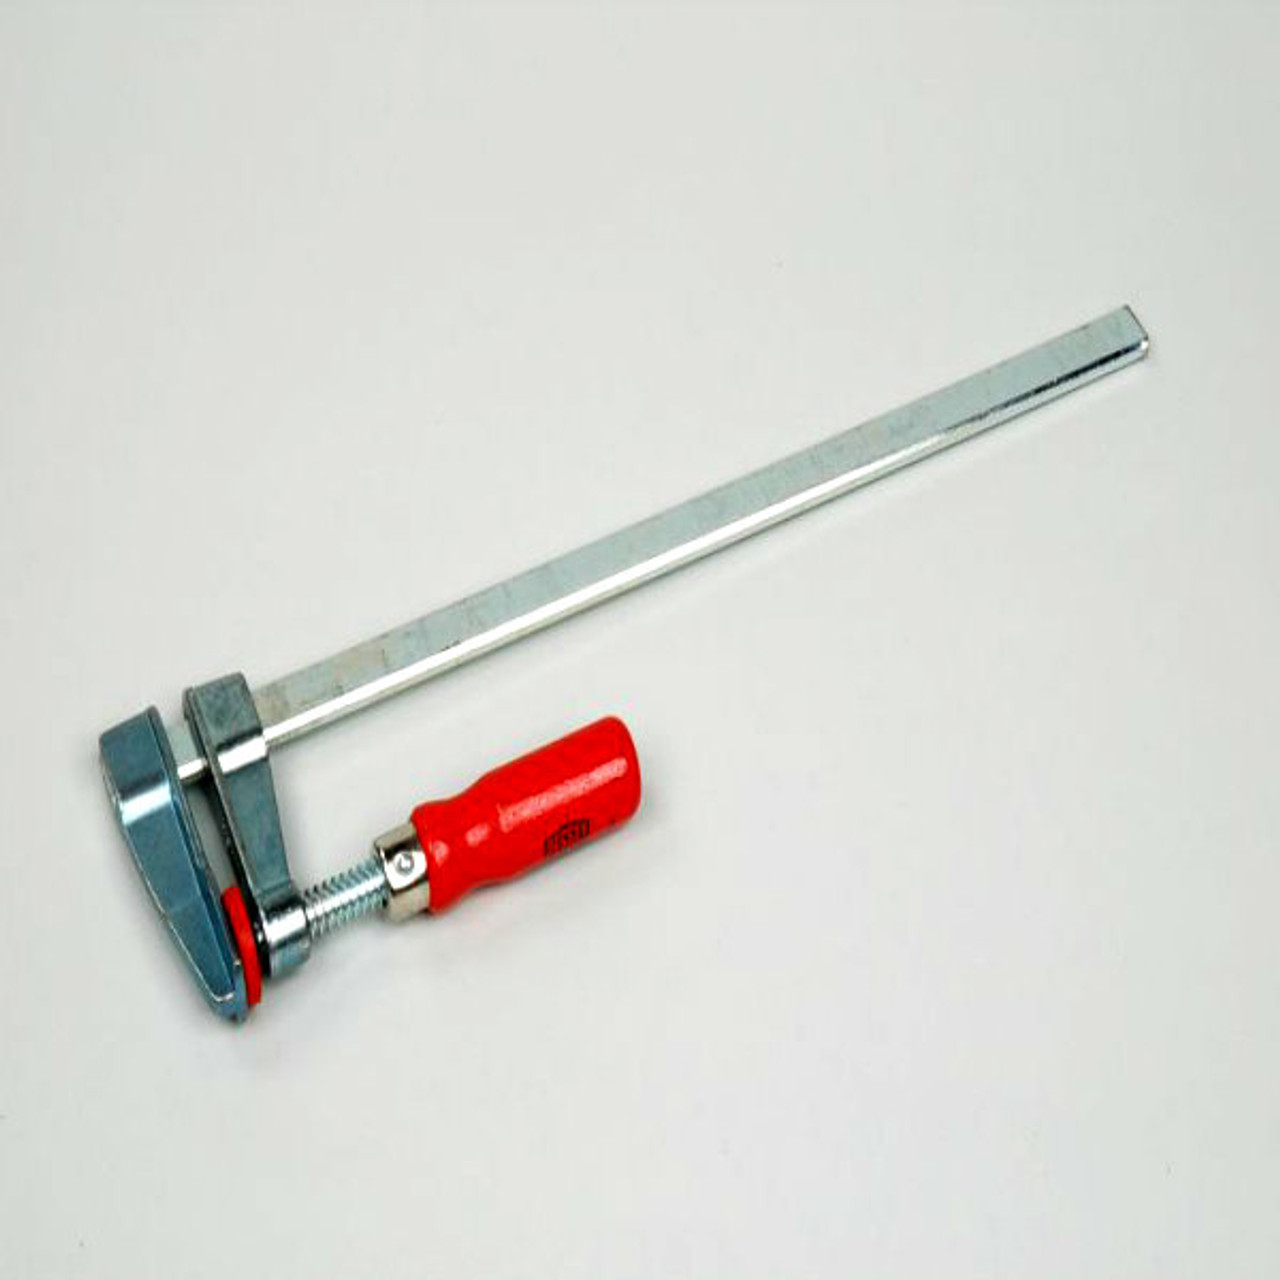 Bessy Die-Cast Quick Action Clamps - Diamond Way Online